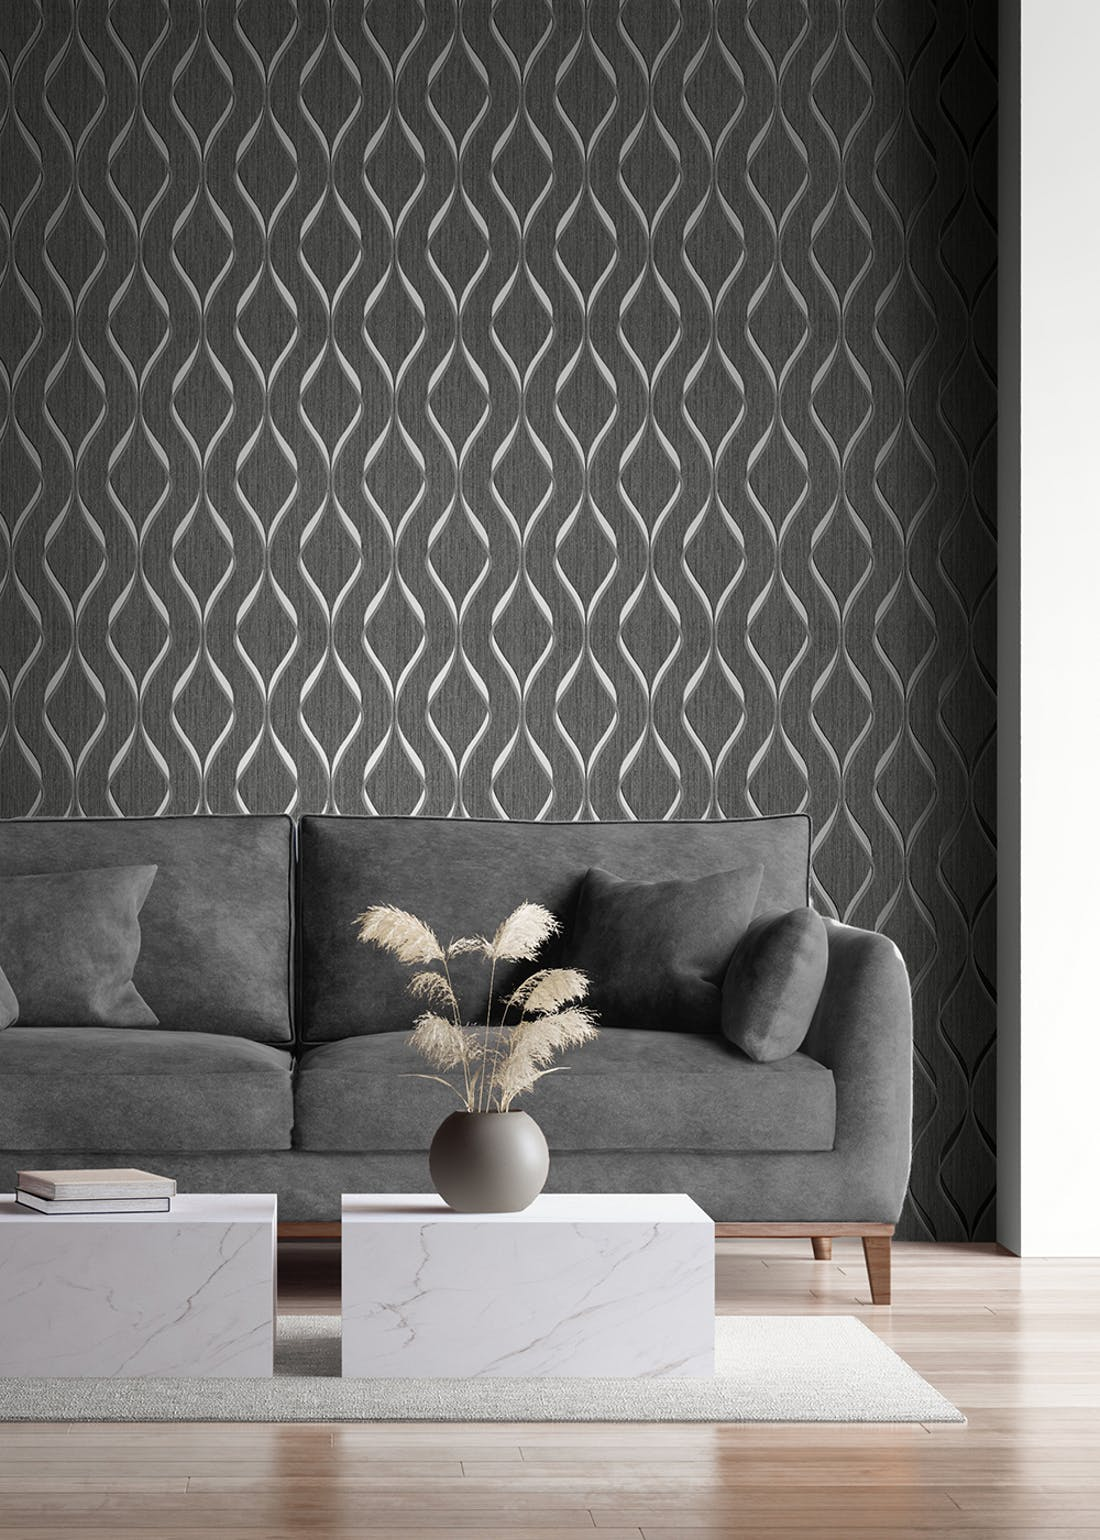 Muriva Indra Wave Charcoal Wallpaper (10.05m x 53cm)